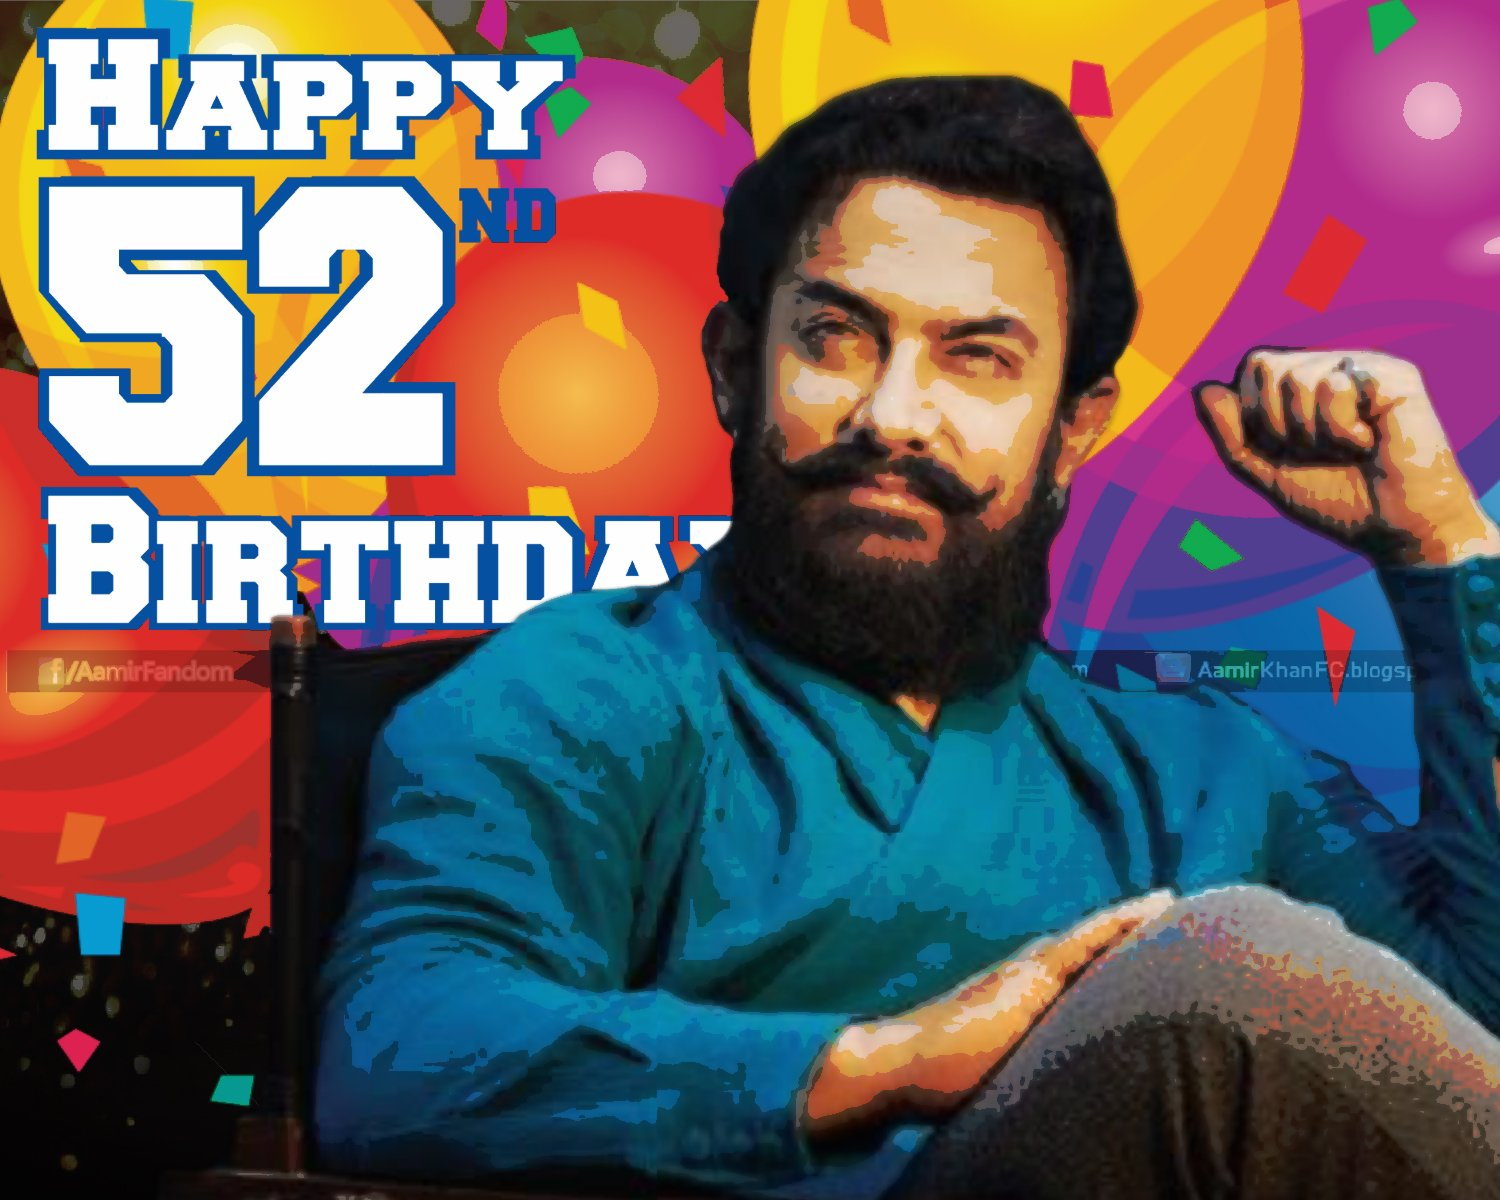 Wishing Aamir Khan A very Happy 52th Birthday, a bollywood legend.